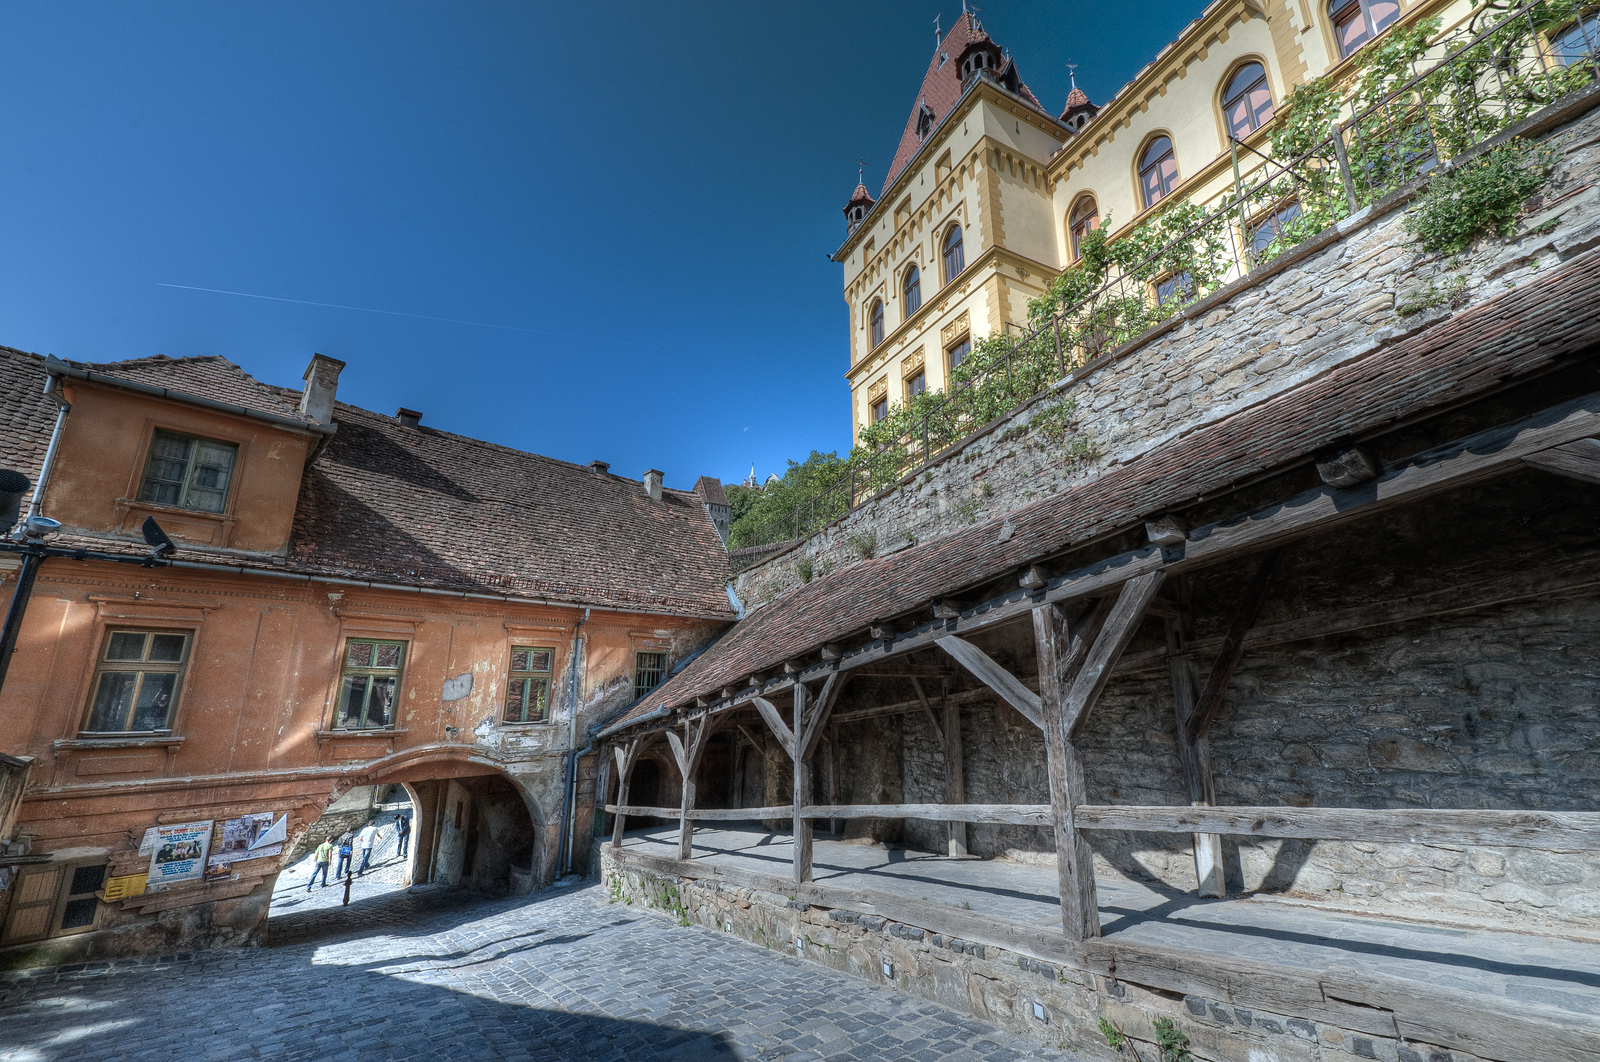 Historic Center of Sighisoara UNESCO World Heritage Site, Romania